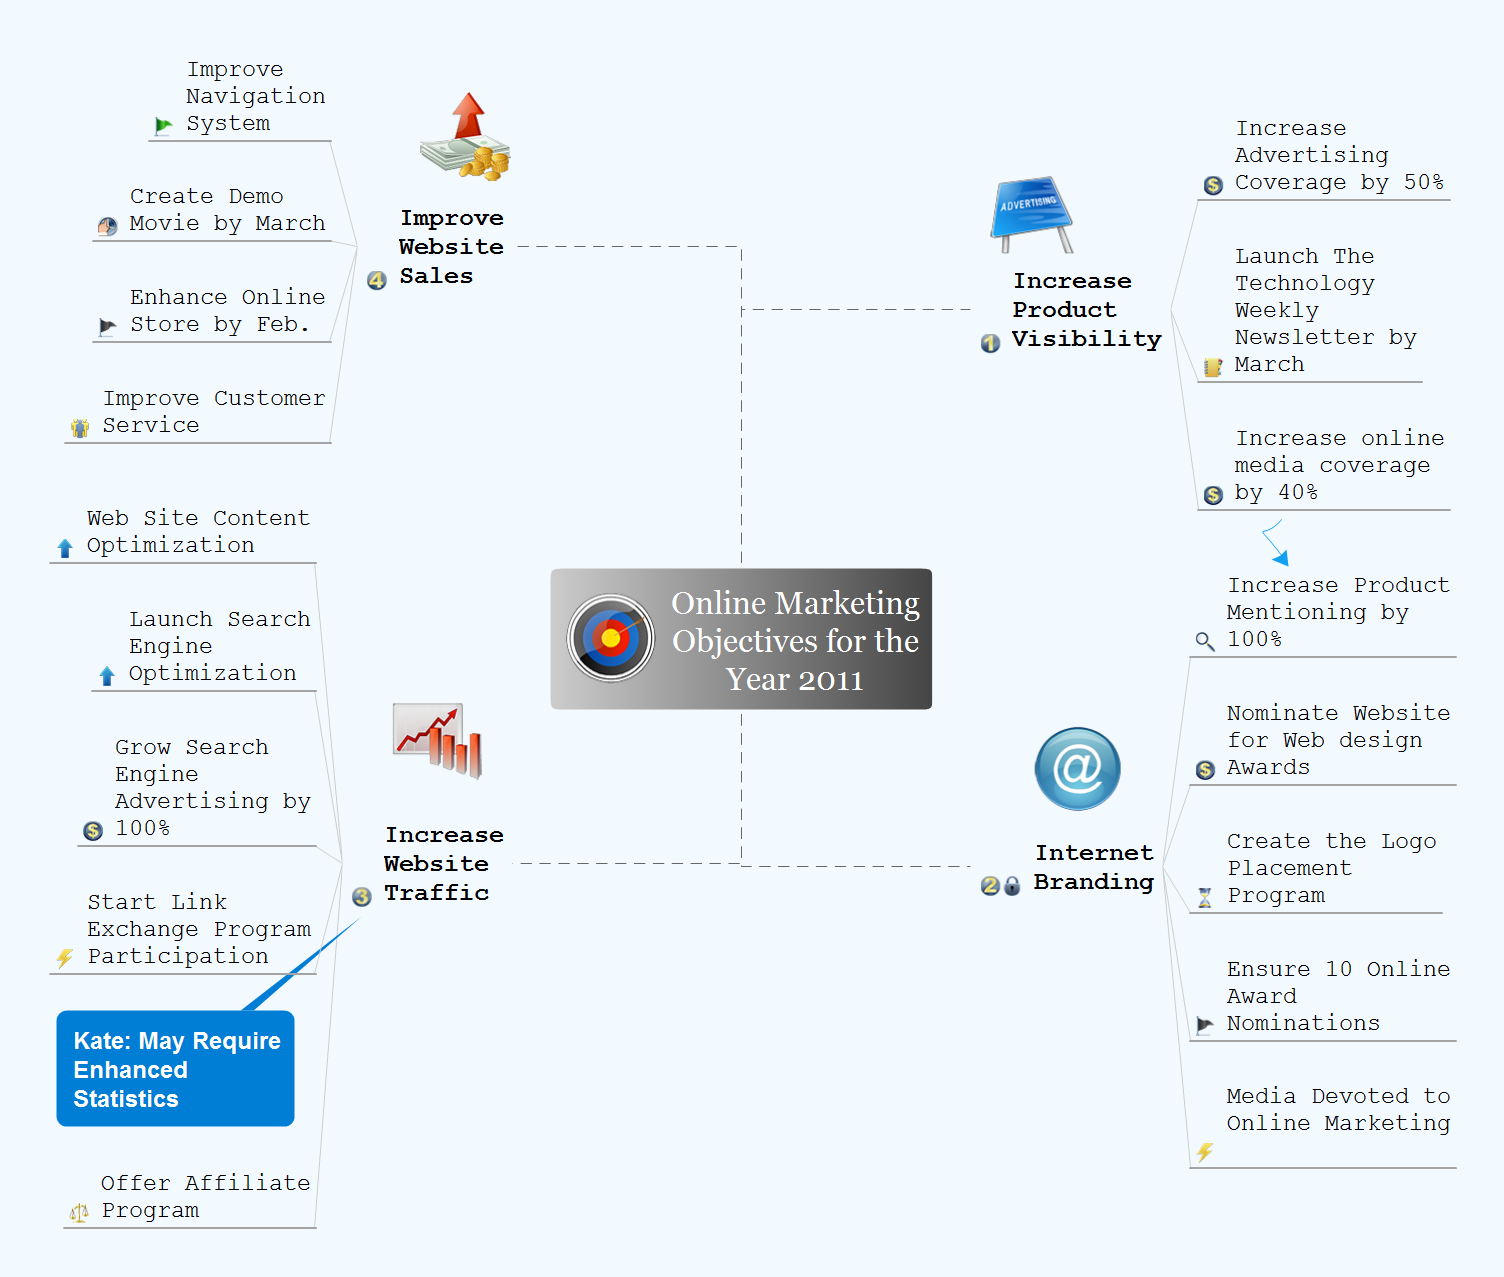 Evernote + MindMapping | Develop Scripts Exchanging Mind ... on create a concept map online, family tree creator online, mind maps draw a real cool, diagram creator online, animation creator online, mind mapping tools online,